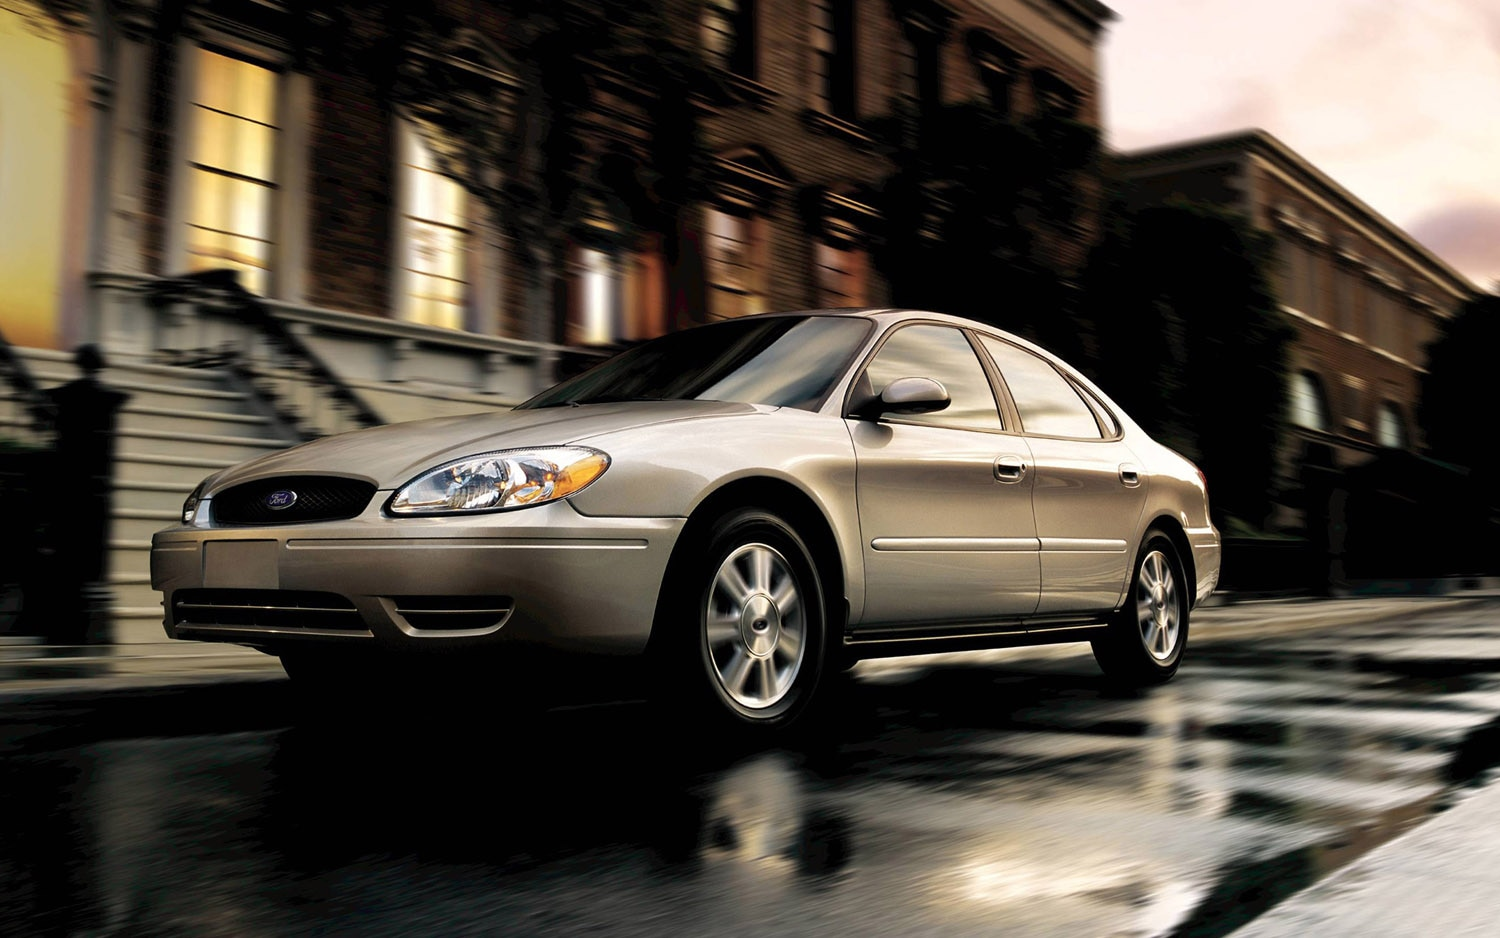 2005 Ford Taurus Front Three Quarter 21